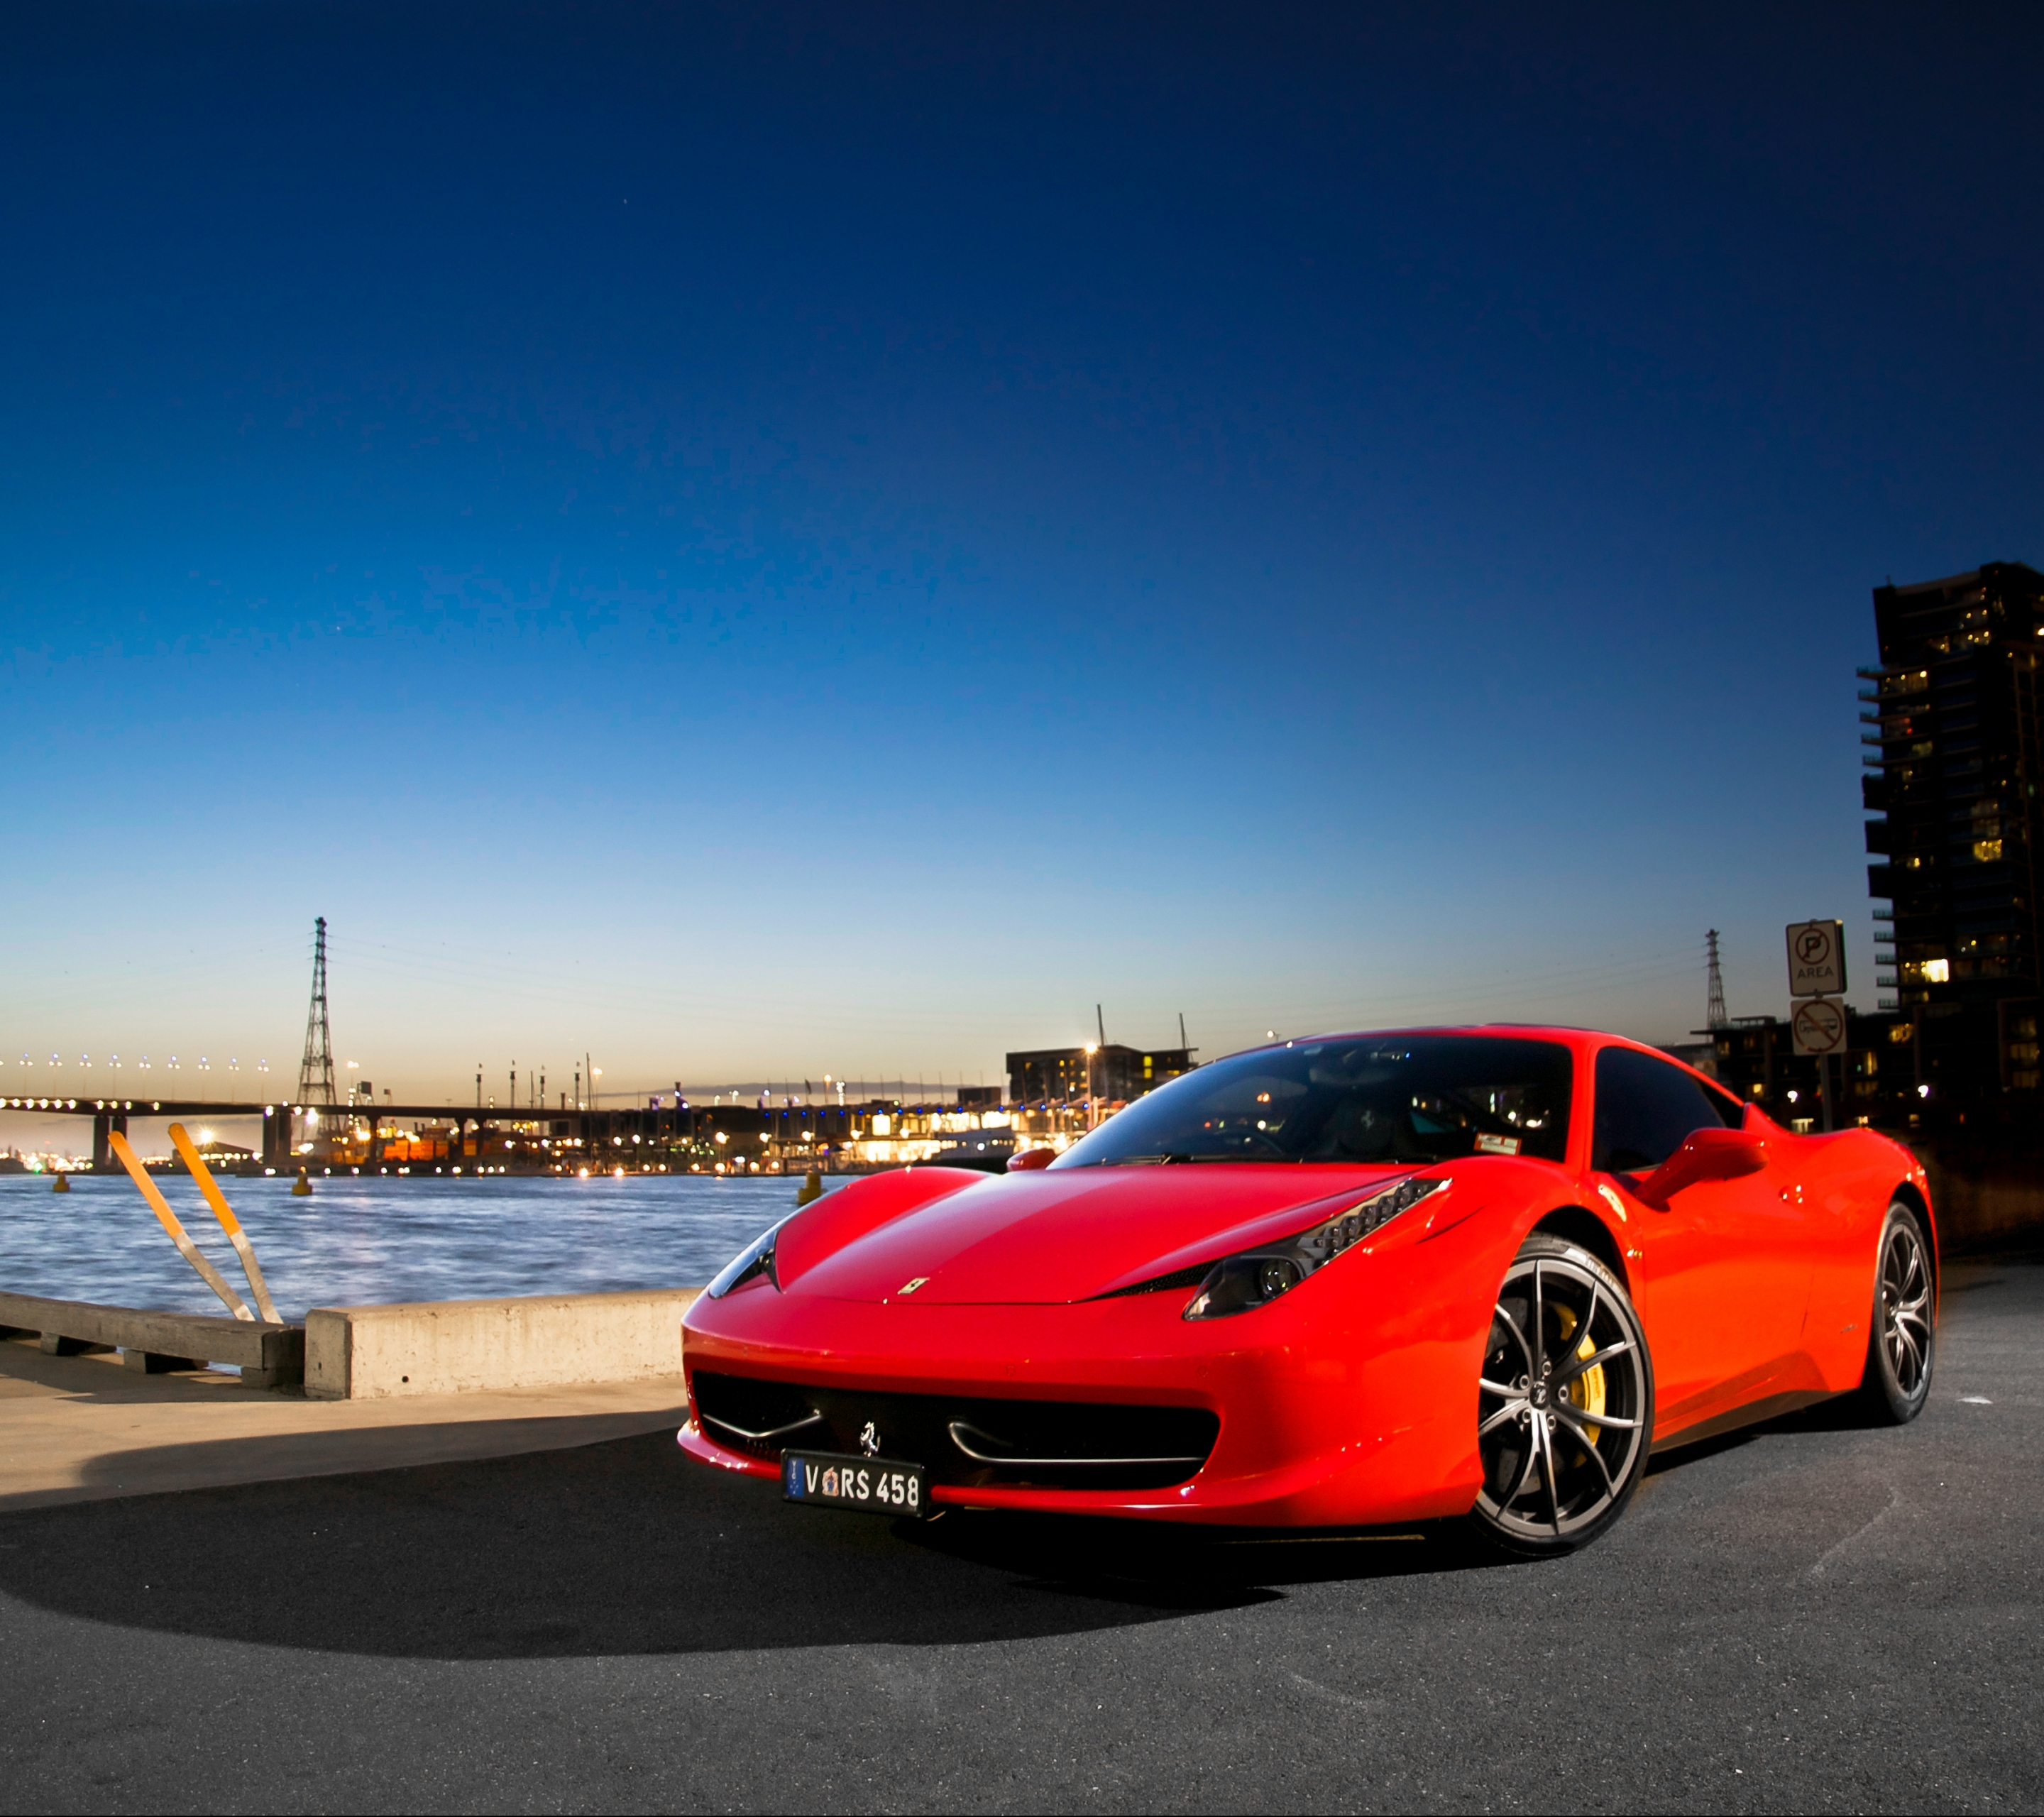 Charming Vehicles / Ferrari 458 (2880x2560) Mobile Wallpaper